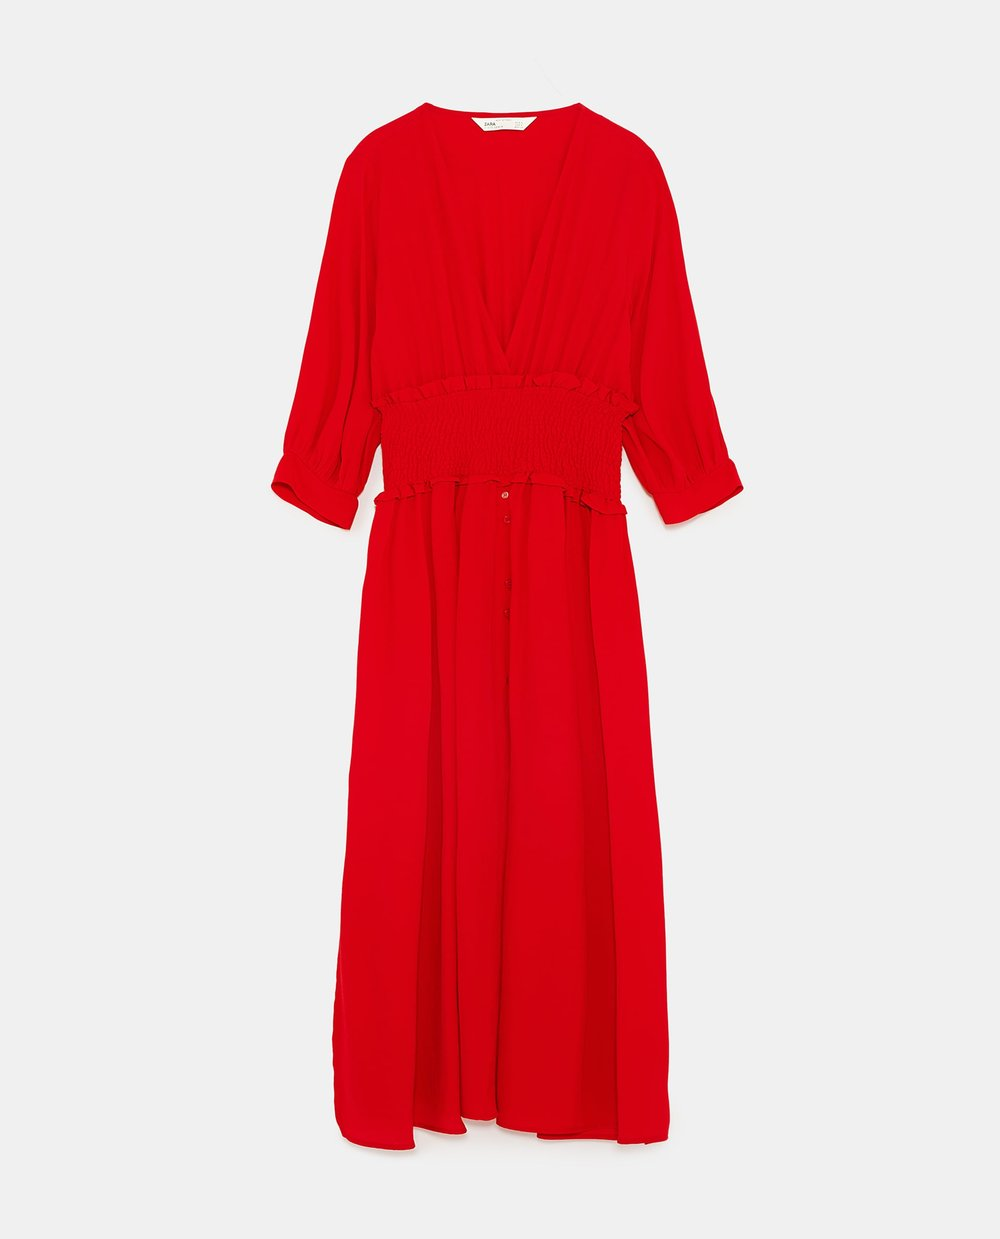 Red Dress with Elastic Waistband  ZARA £39.99